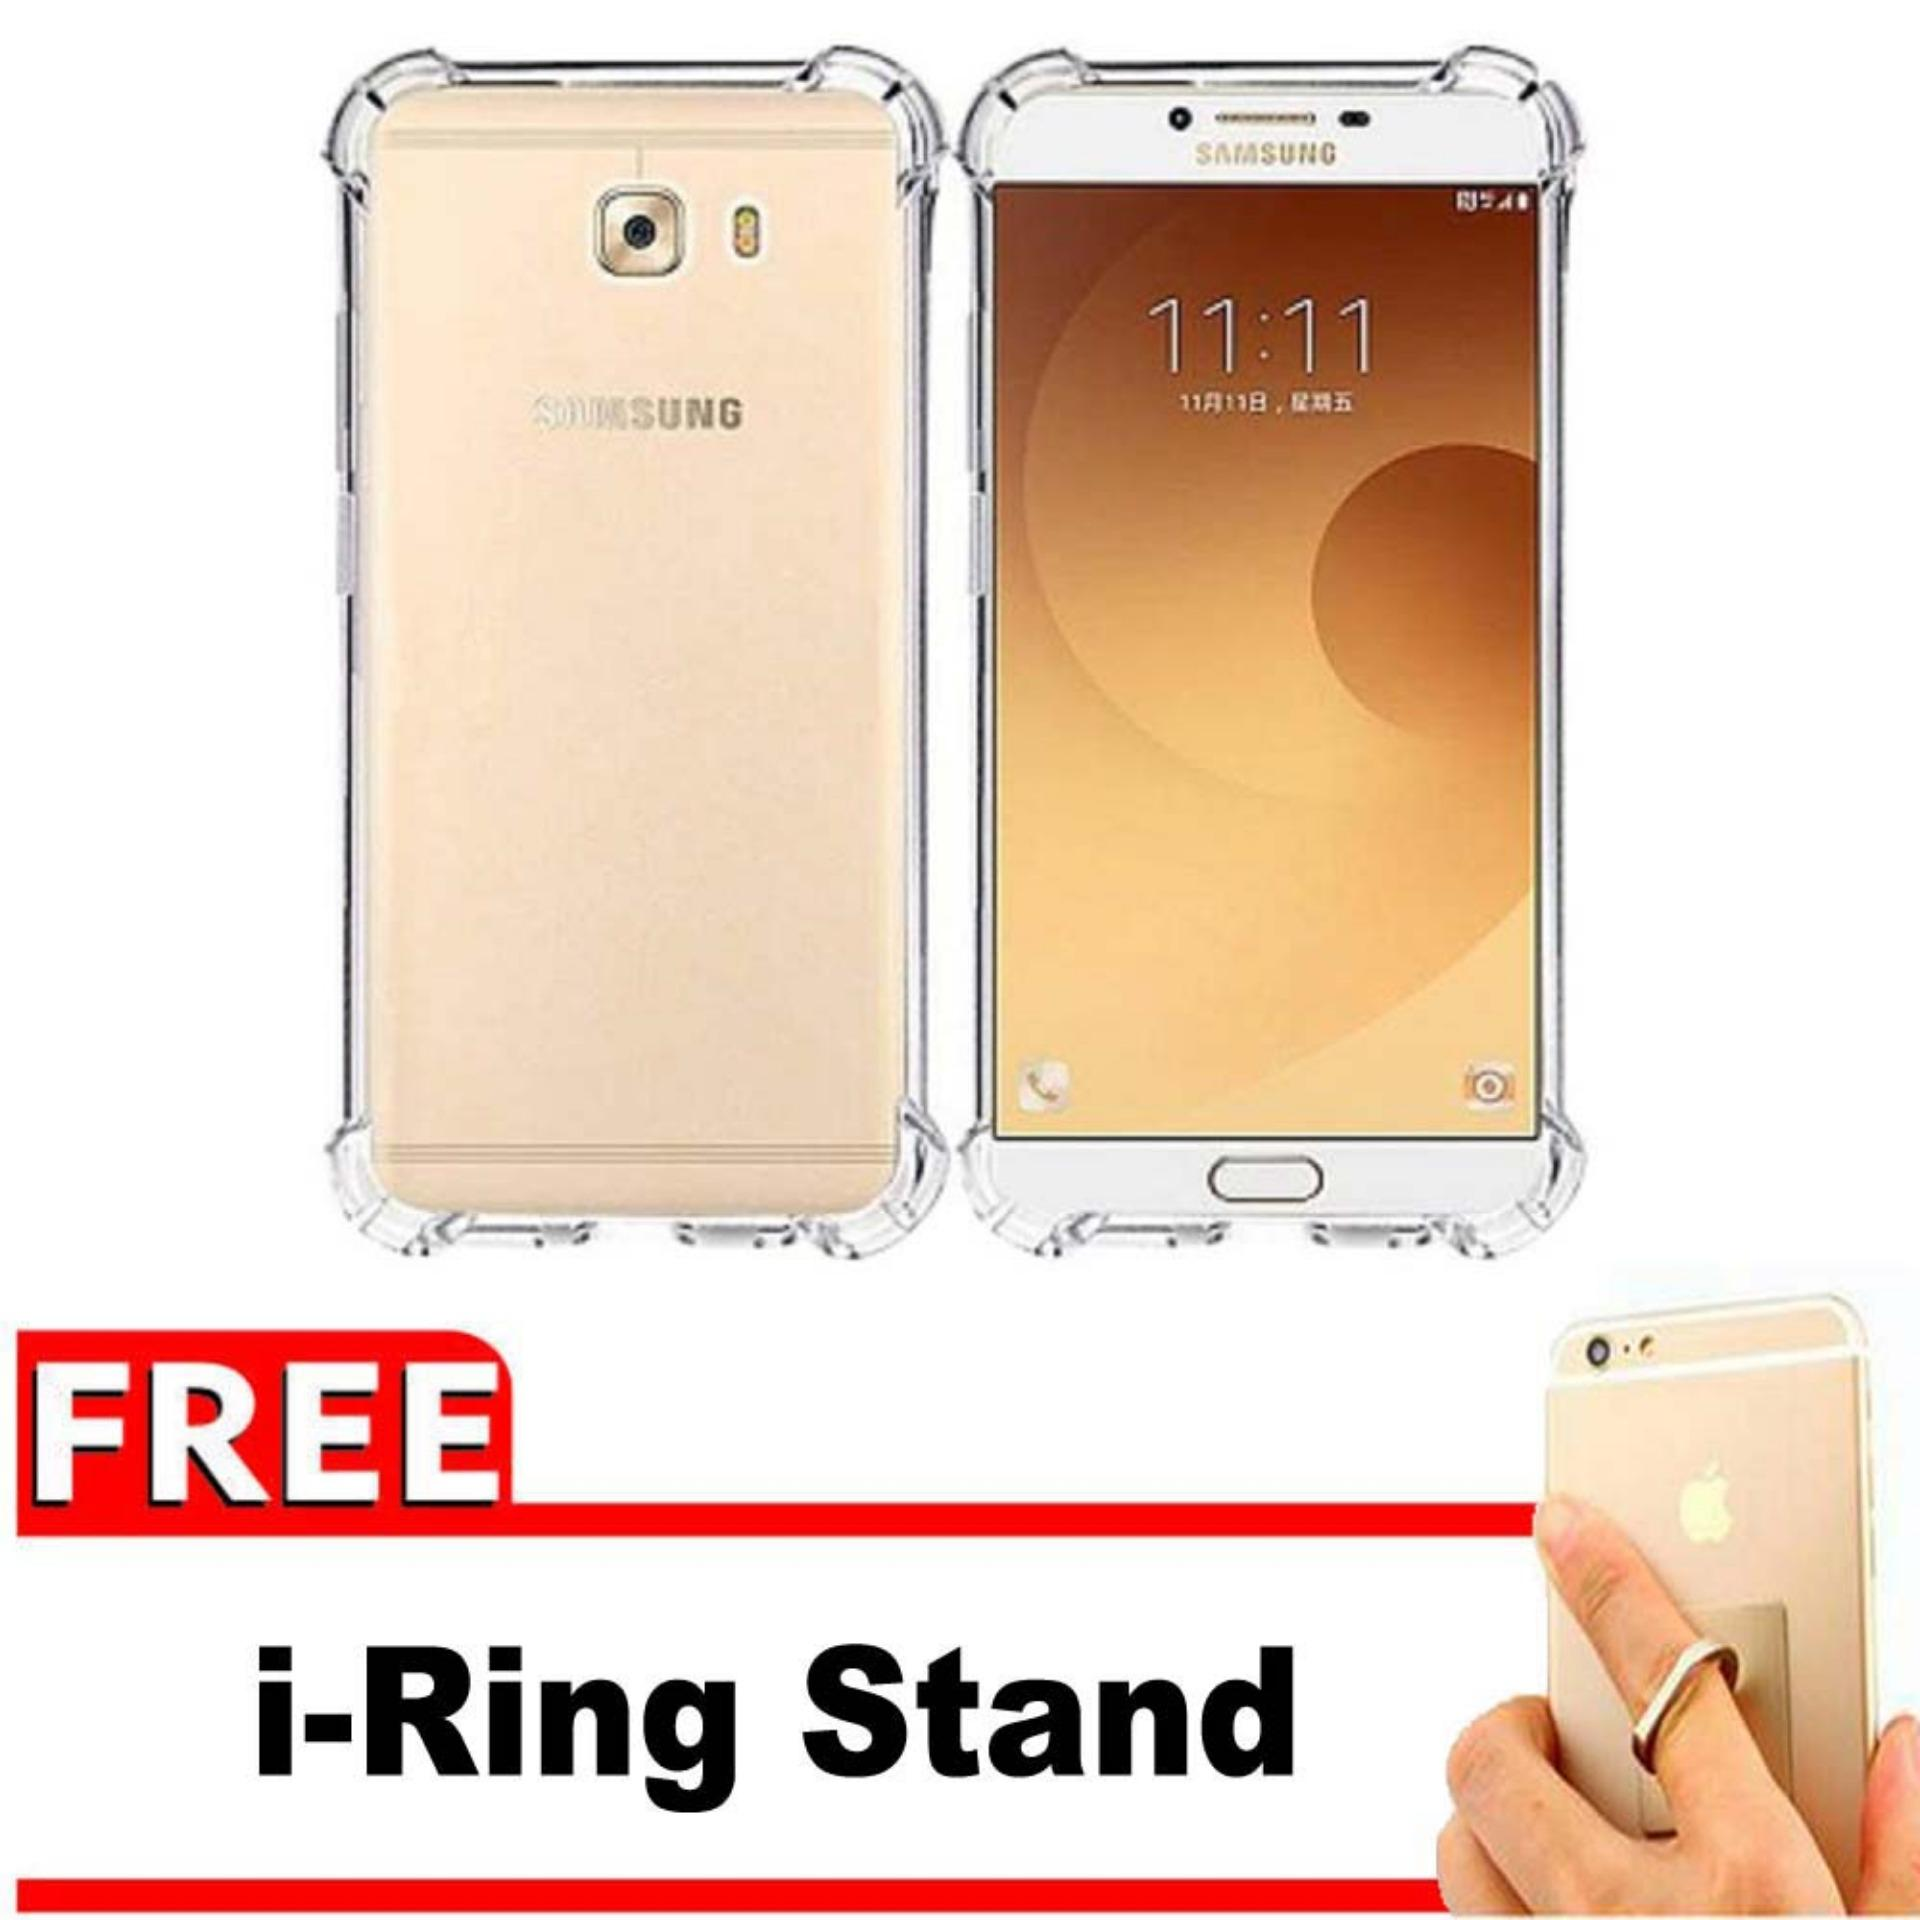 ShockCase for Samsung Galaxy C5 Pro / 4G LTE / Duos | Premium Softcase Jelly Anti Crack Shockproof - Gratis Free iRing Stand Phone Holder - Transparan